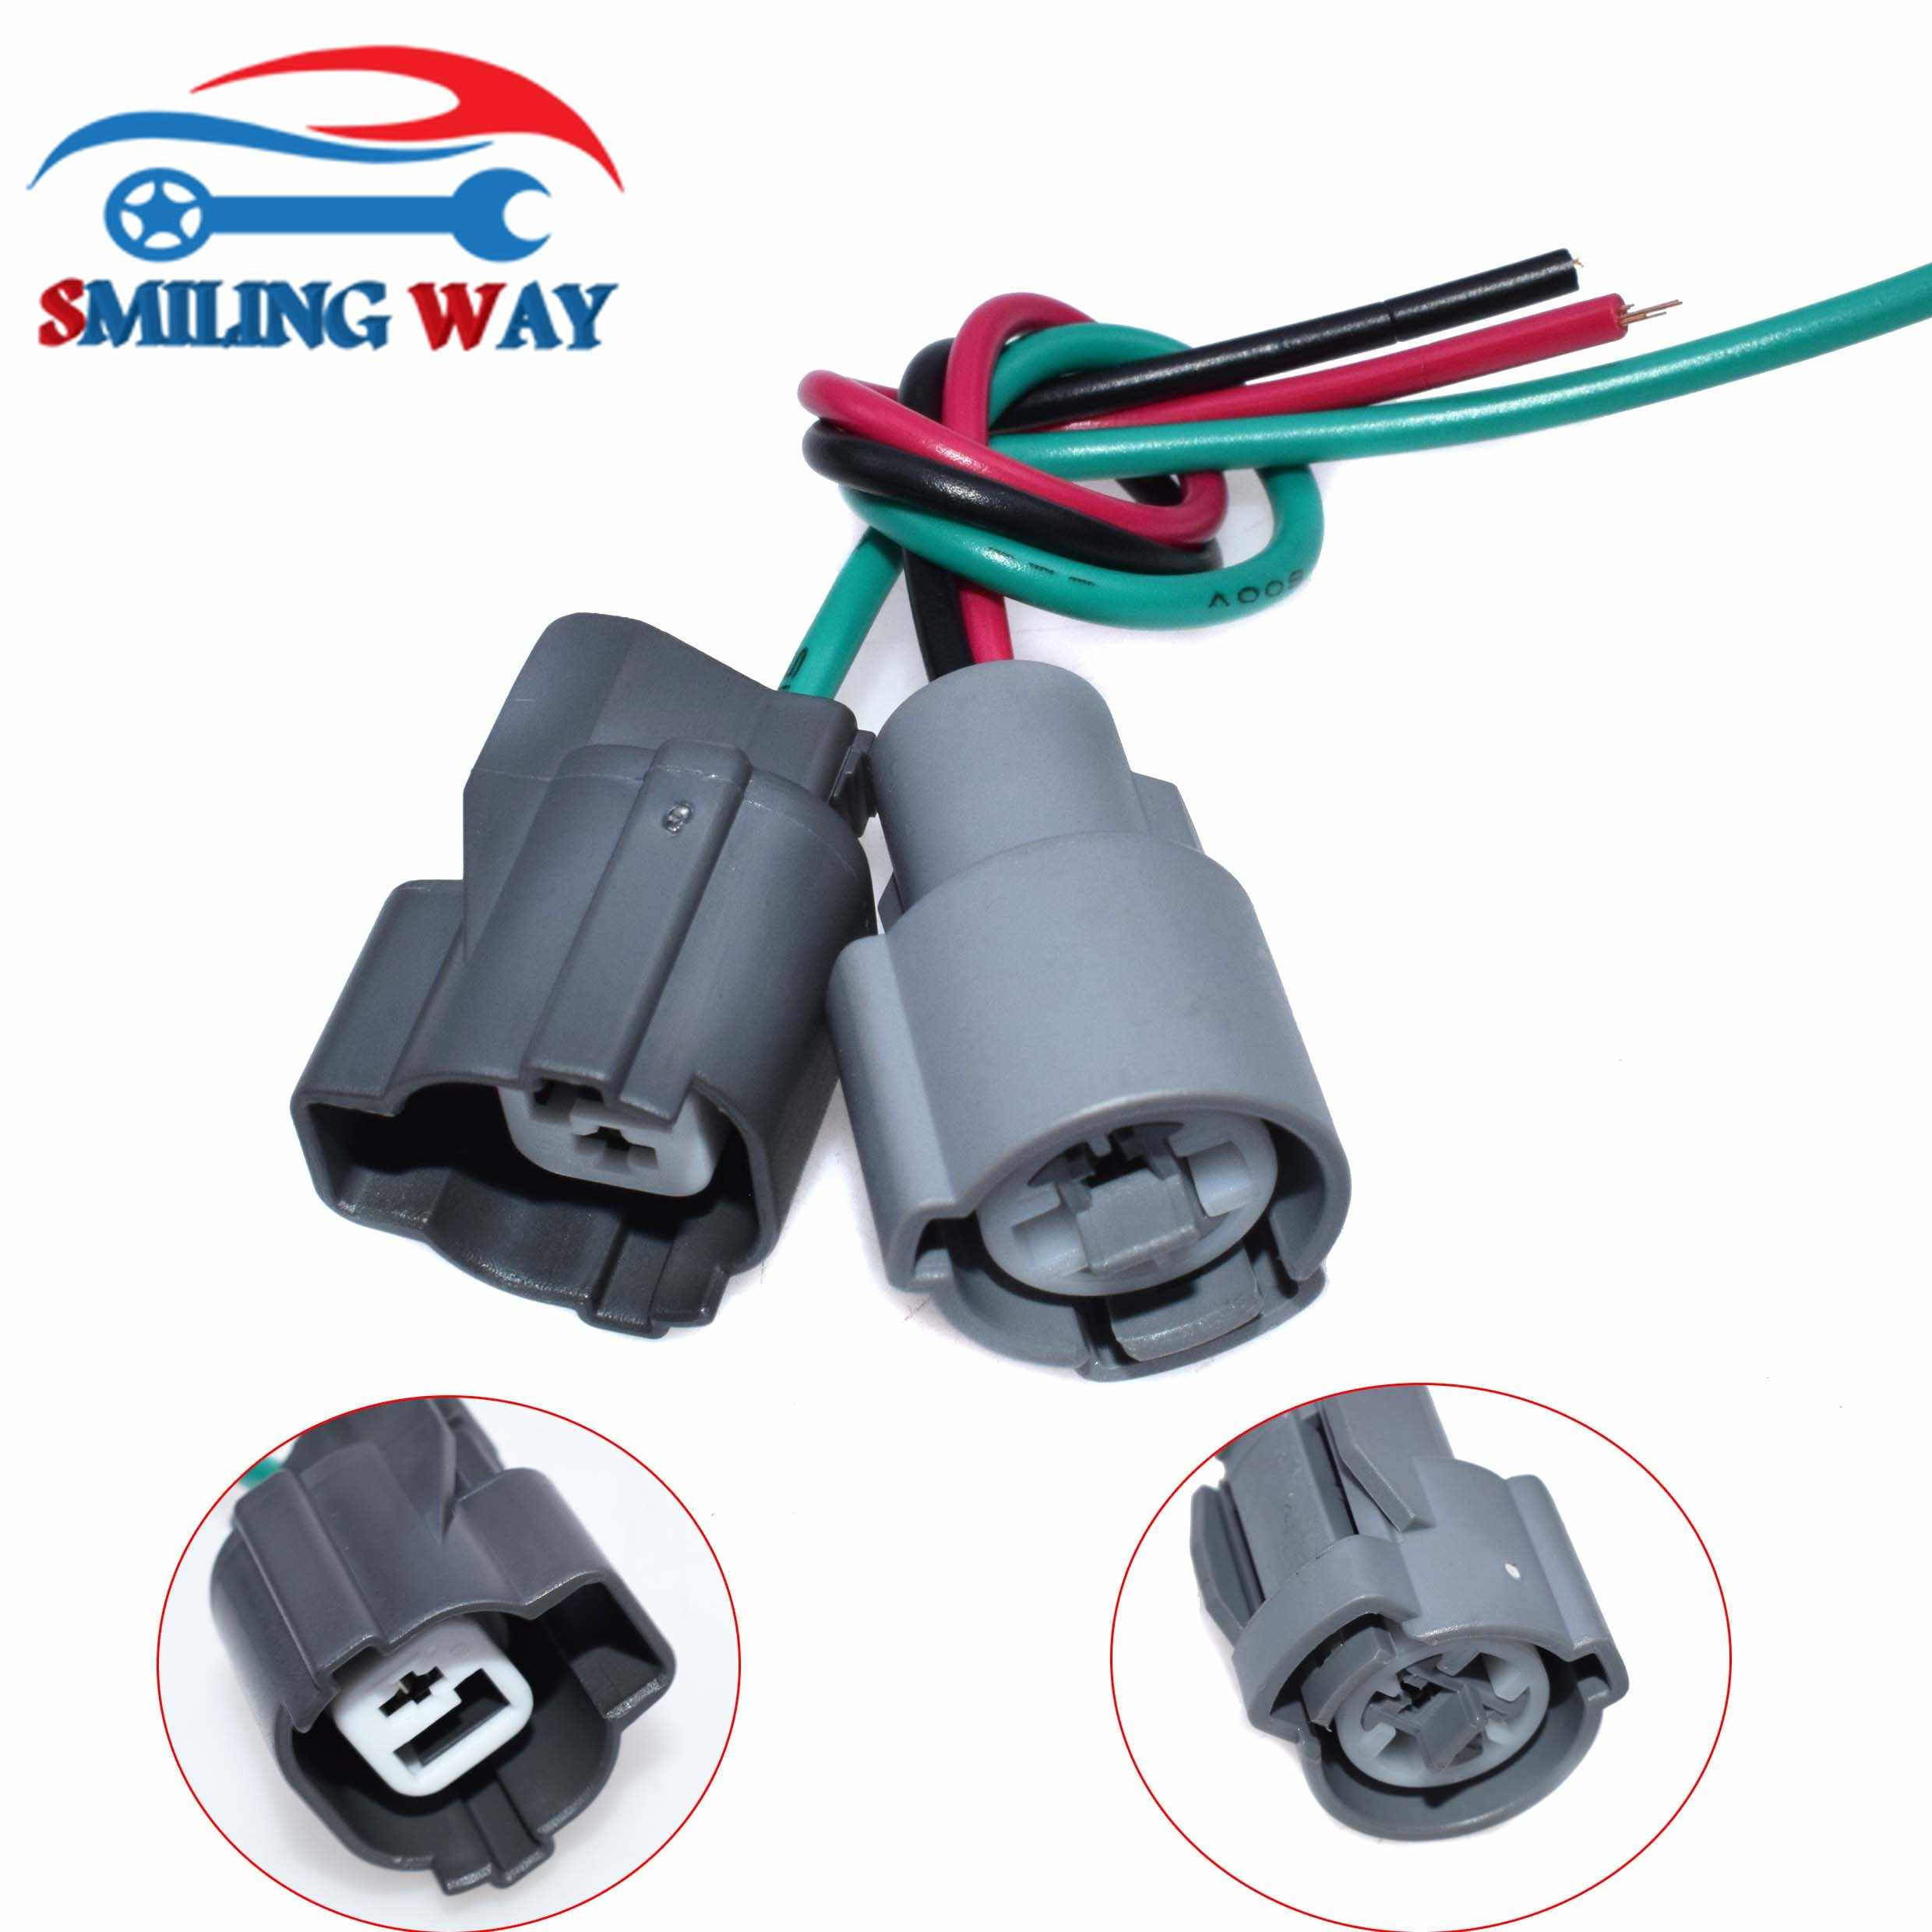 vtec solenoid switch oil pressure switch connector wire harness wiring pigtail plug for honda acura [ 2480 x 2480 Pixel ]